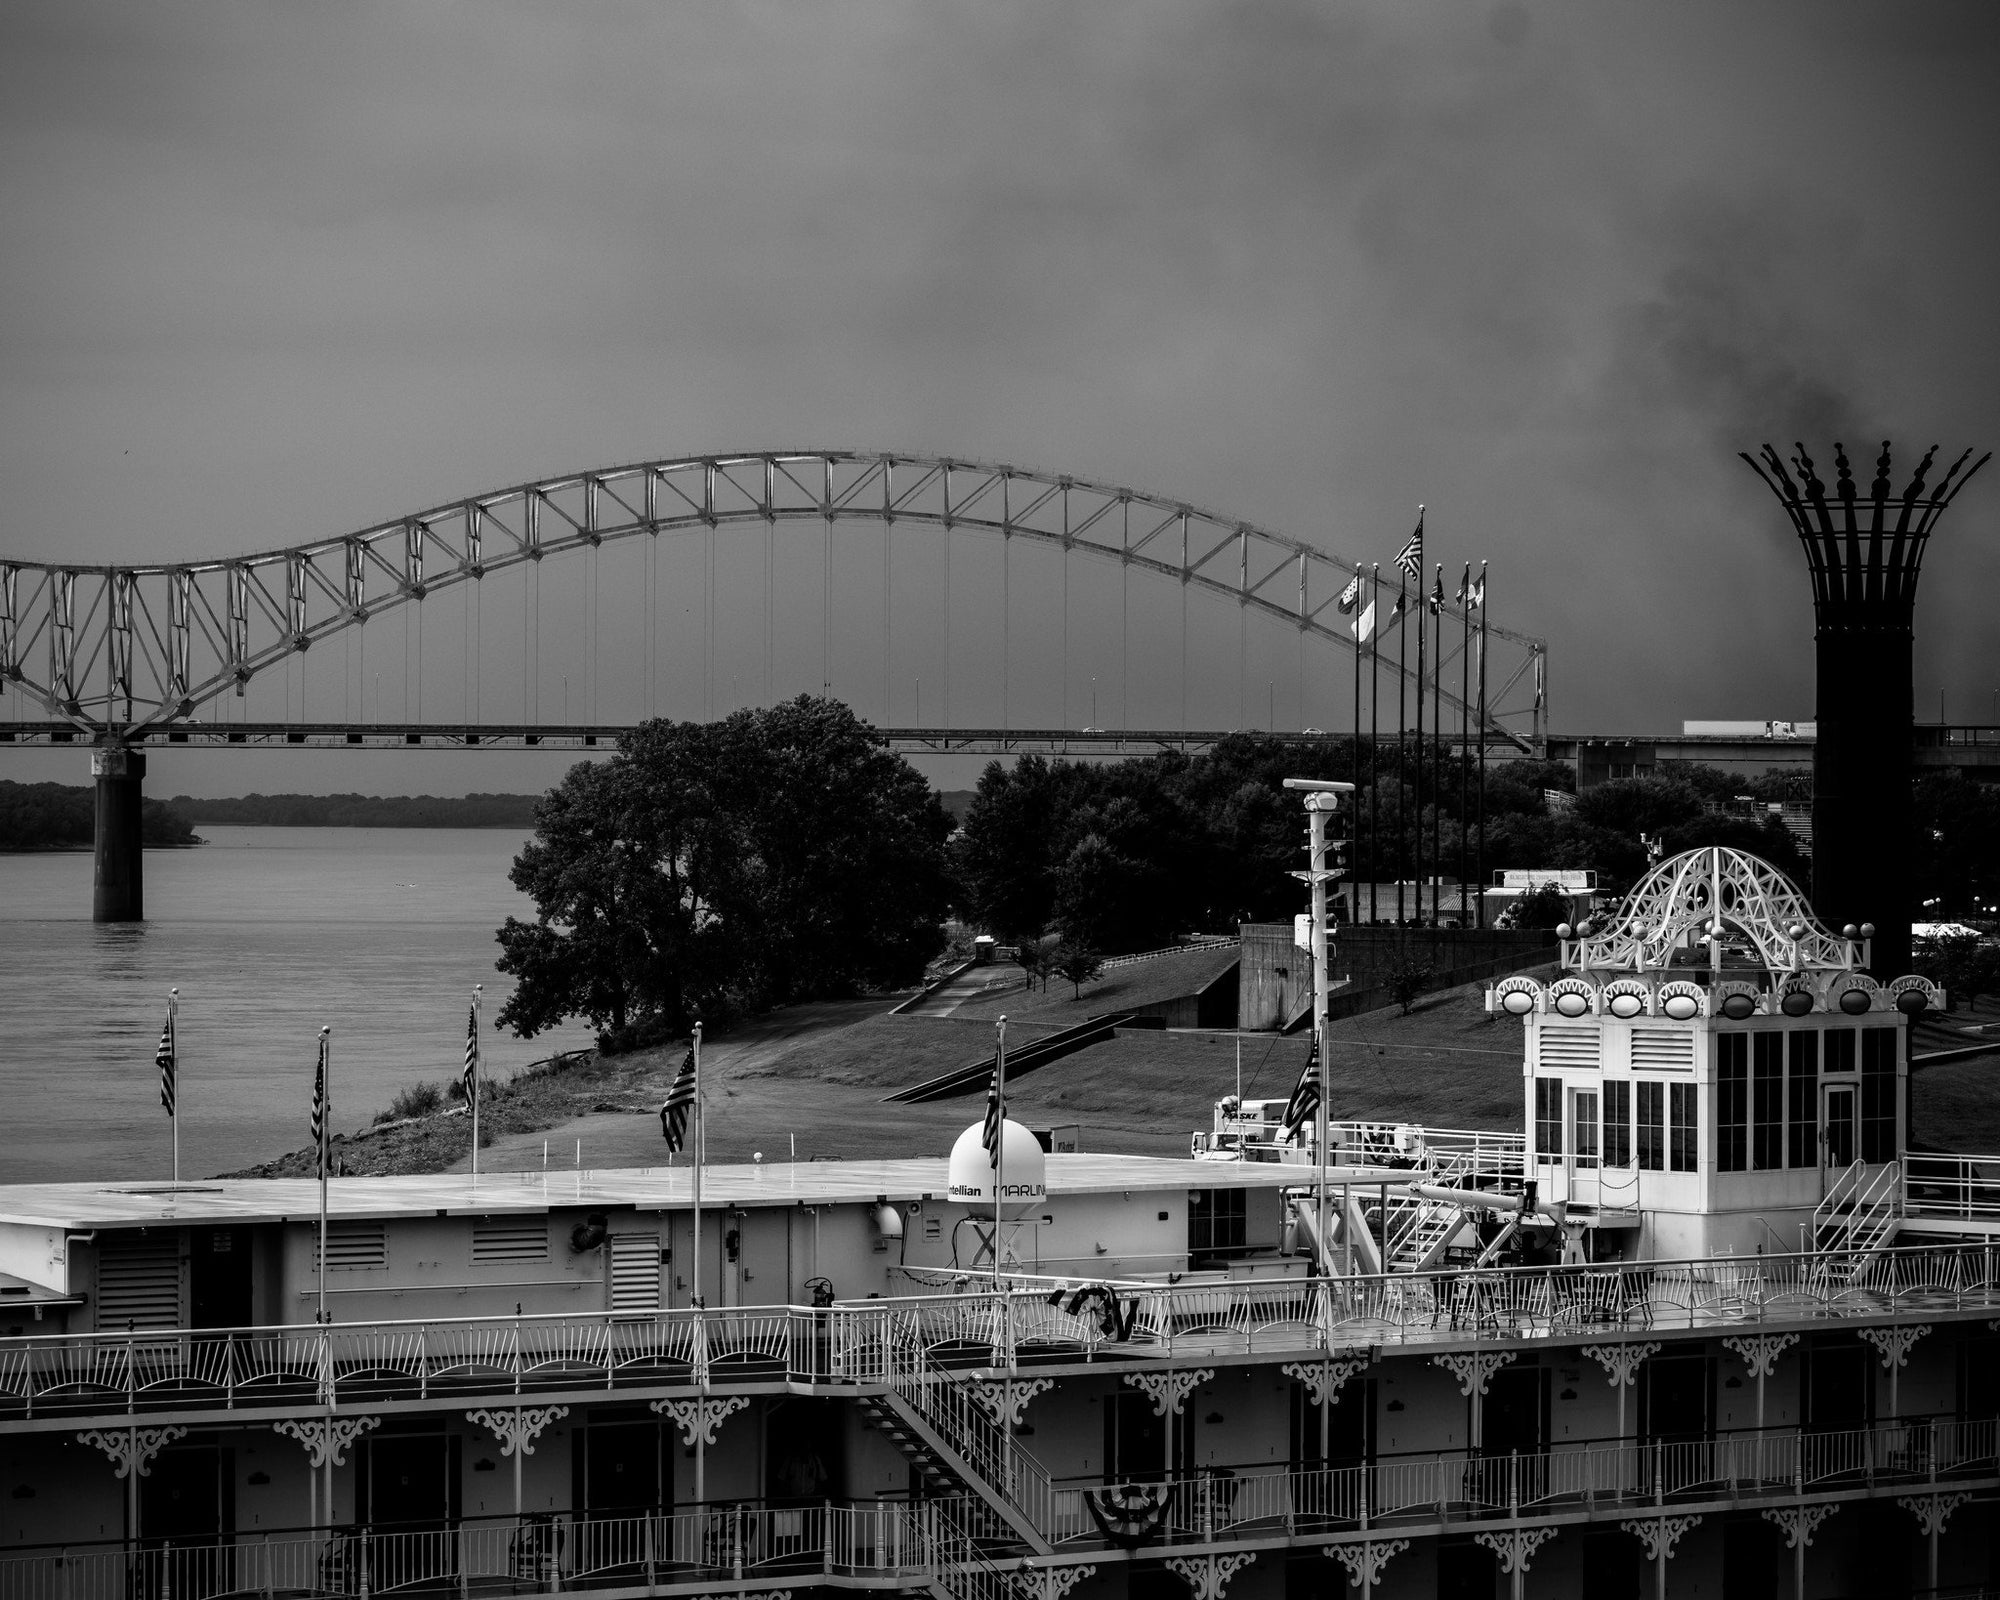 Memphis, Tennessee Bridge Over The Mississippi River, Black and White Print - Walking Pants Curiosities